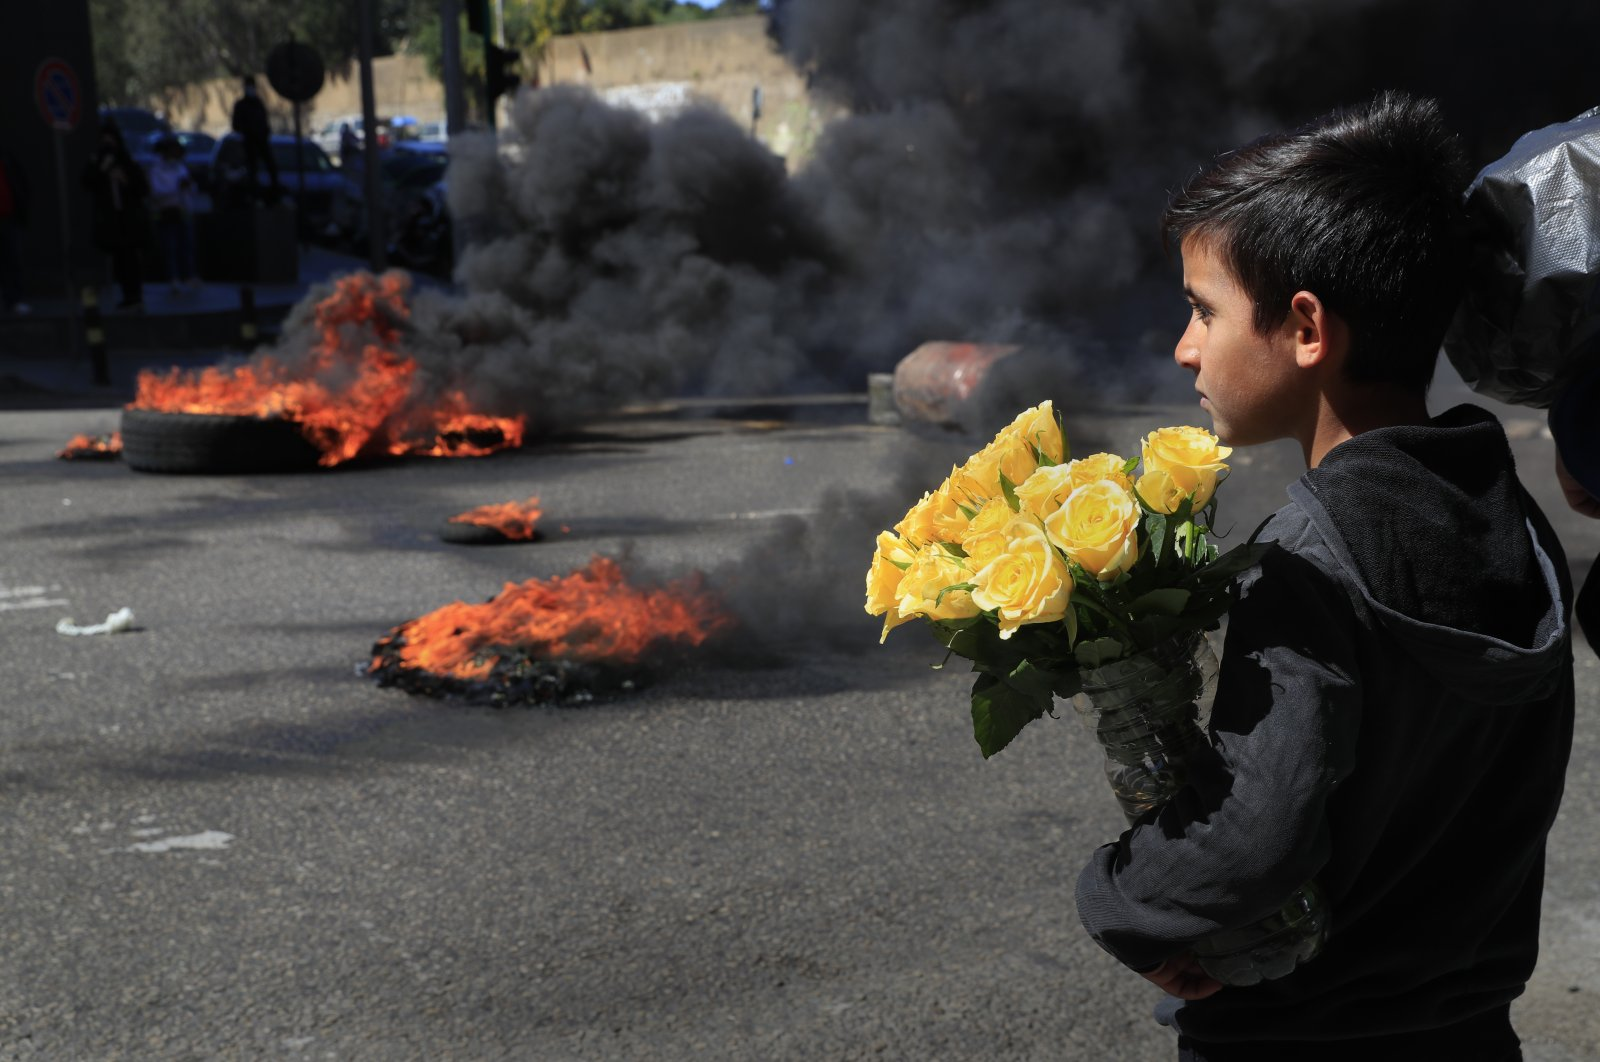 A Syrian boy selling flowers on the street watches protesters burn tires to block a main road during a protest against the increase in prices of consumer goods and the crash of the local currency, in Beirut, Lebanon, March 16, 2021. (AP Photo)